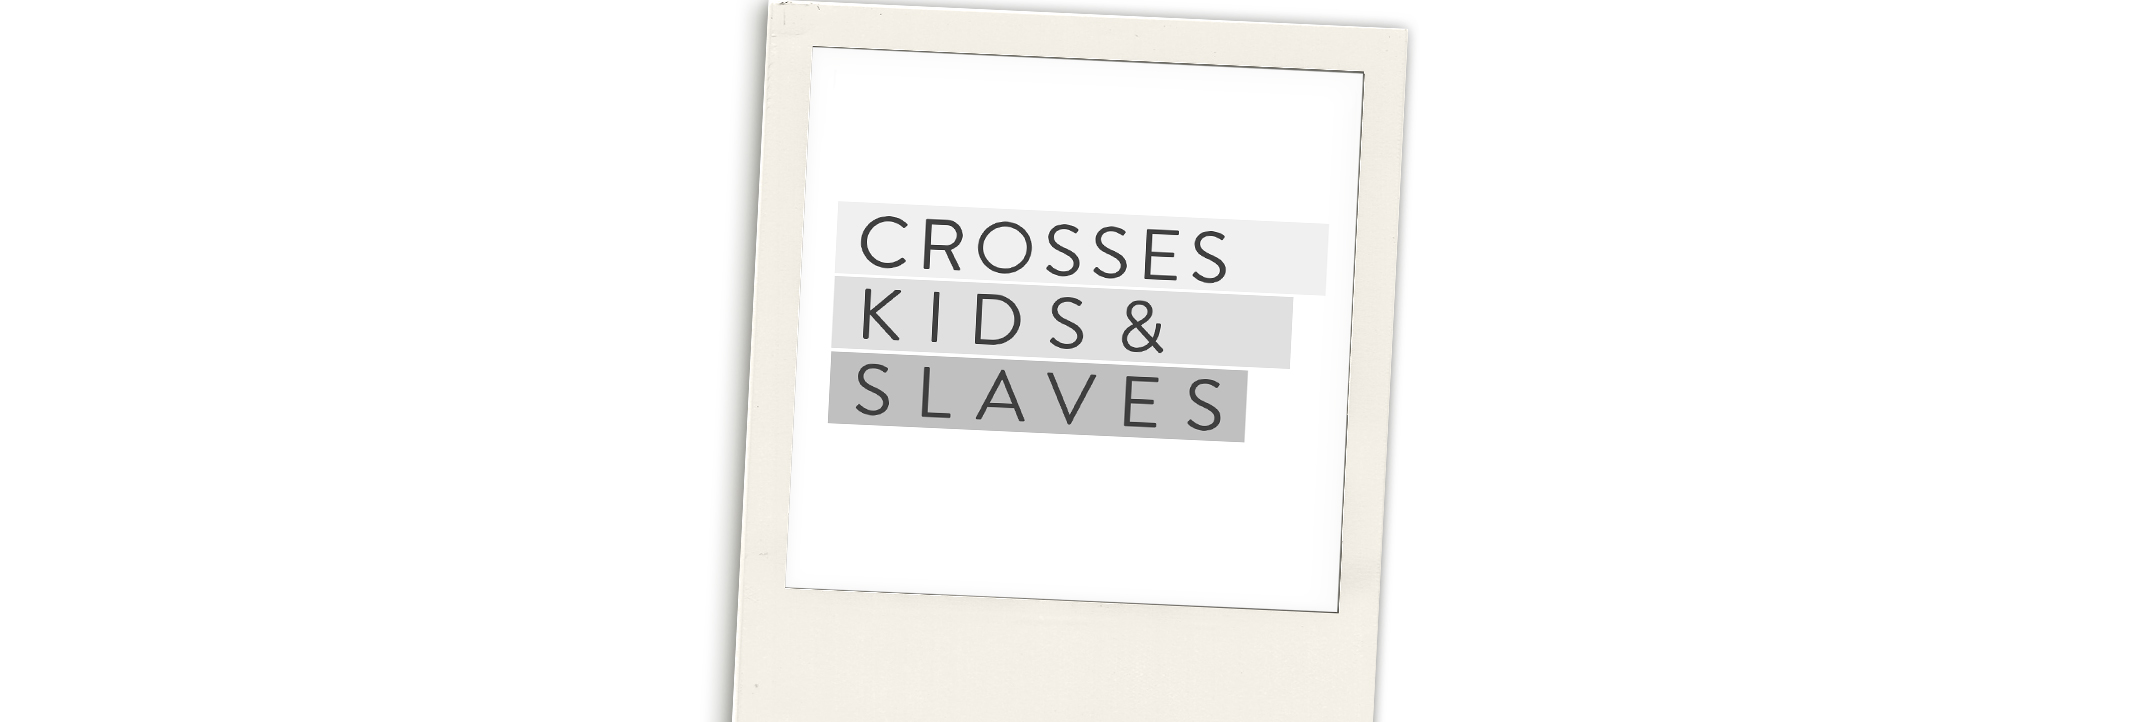 CrossesKidsAndSlaves_messagemedia.jpg